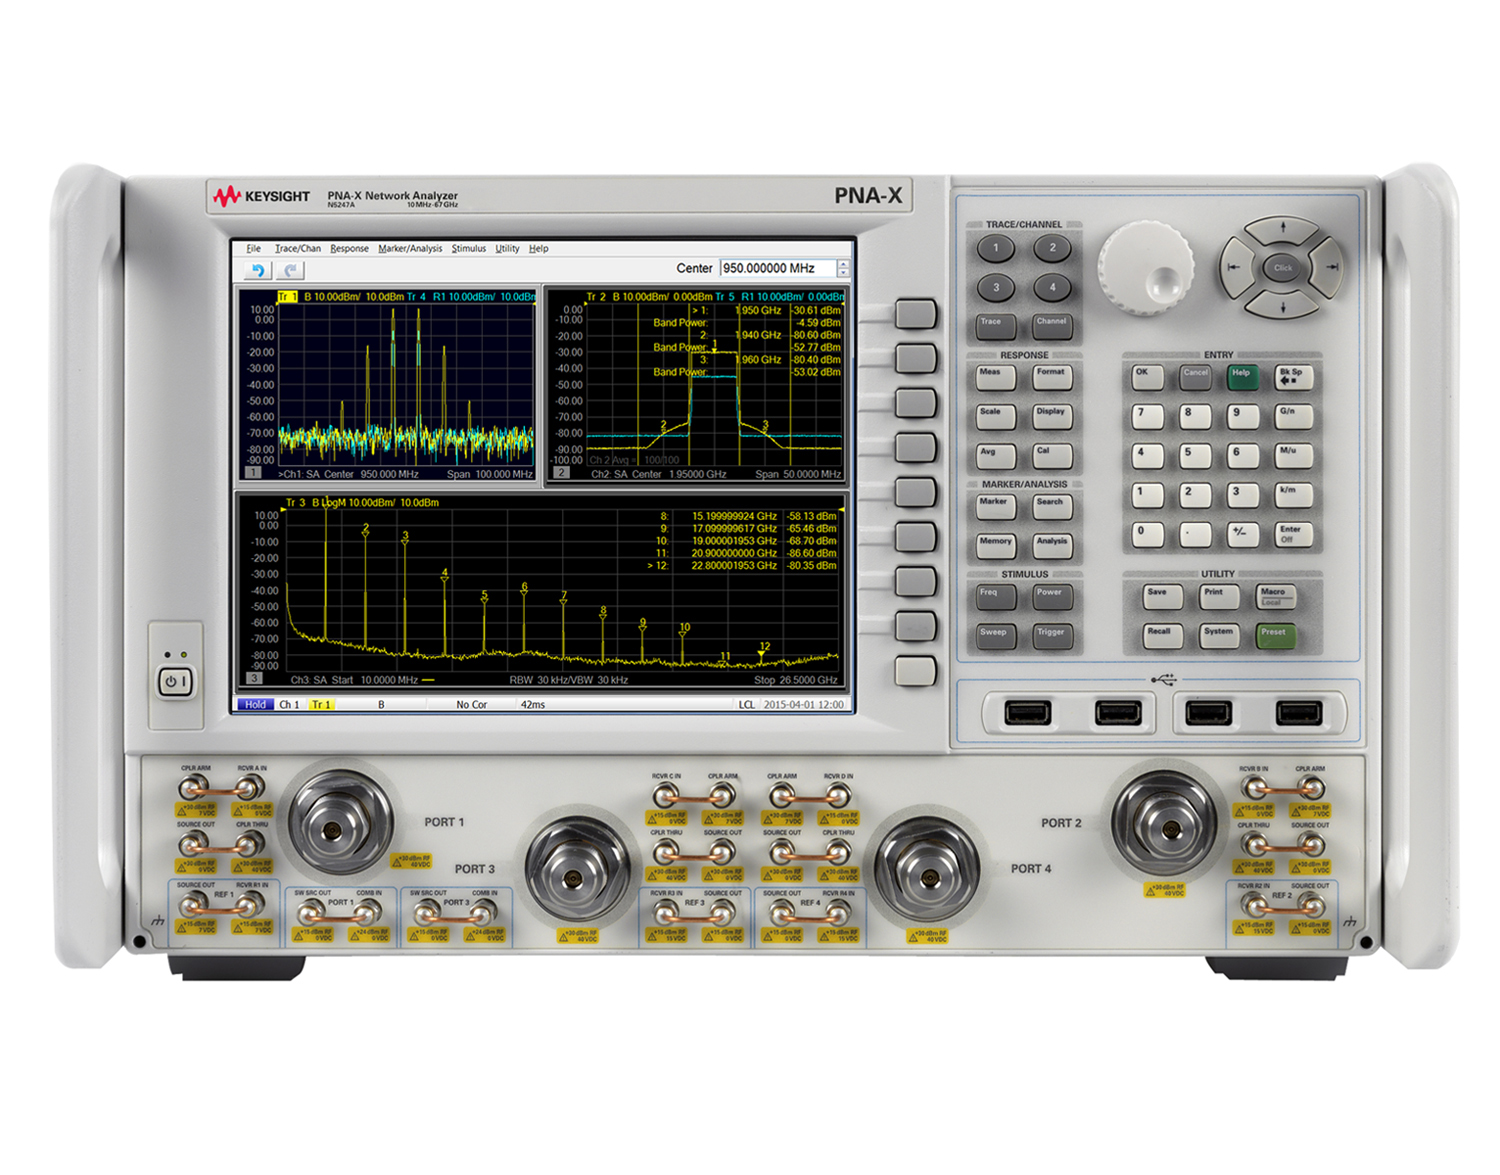 Keysight Technologies Integrates Spectrum Analyzer Capability Into